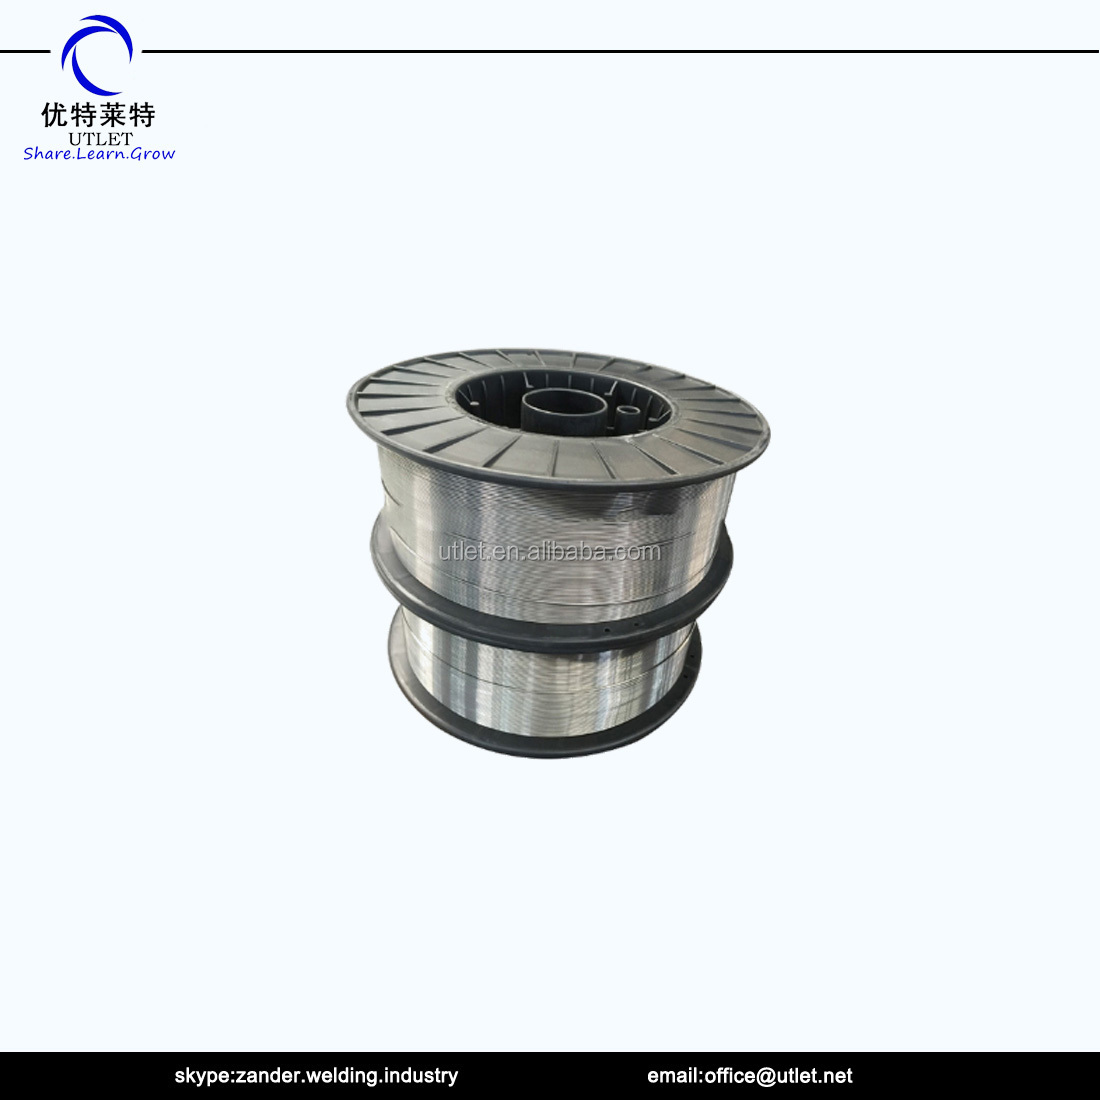 Stainless Steel Welding Wire Er308lsi 0.8mm-1.6mm - Buy ...